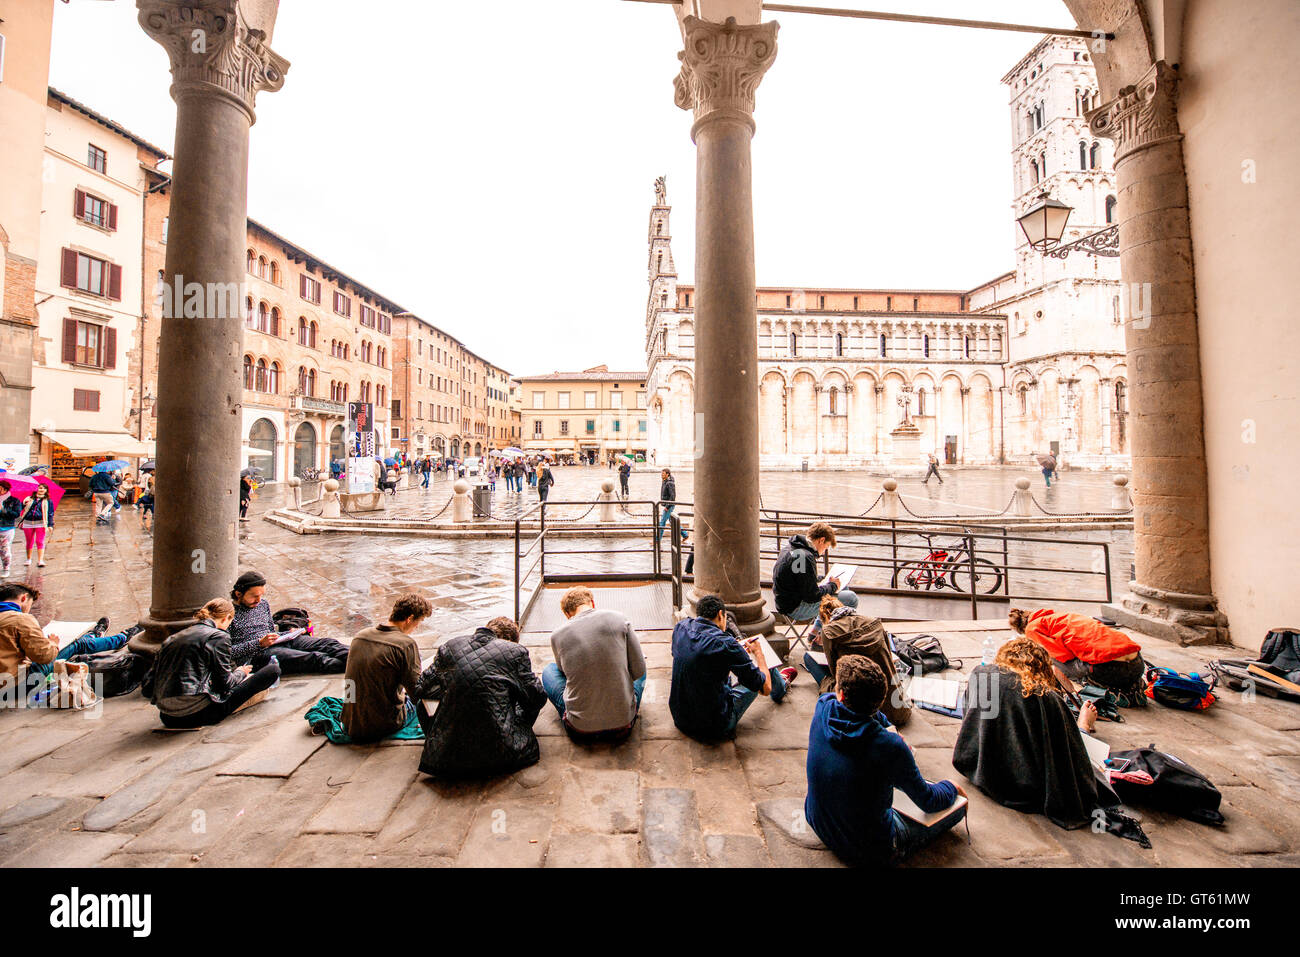 Lucca old town - Stock Image